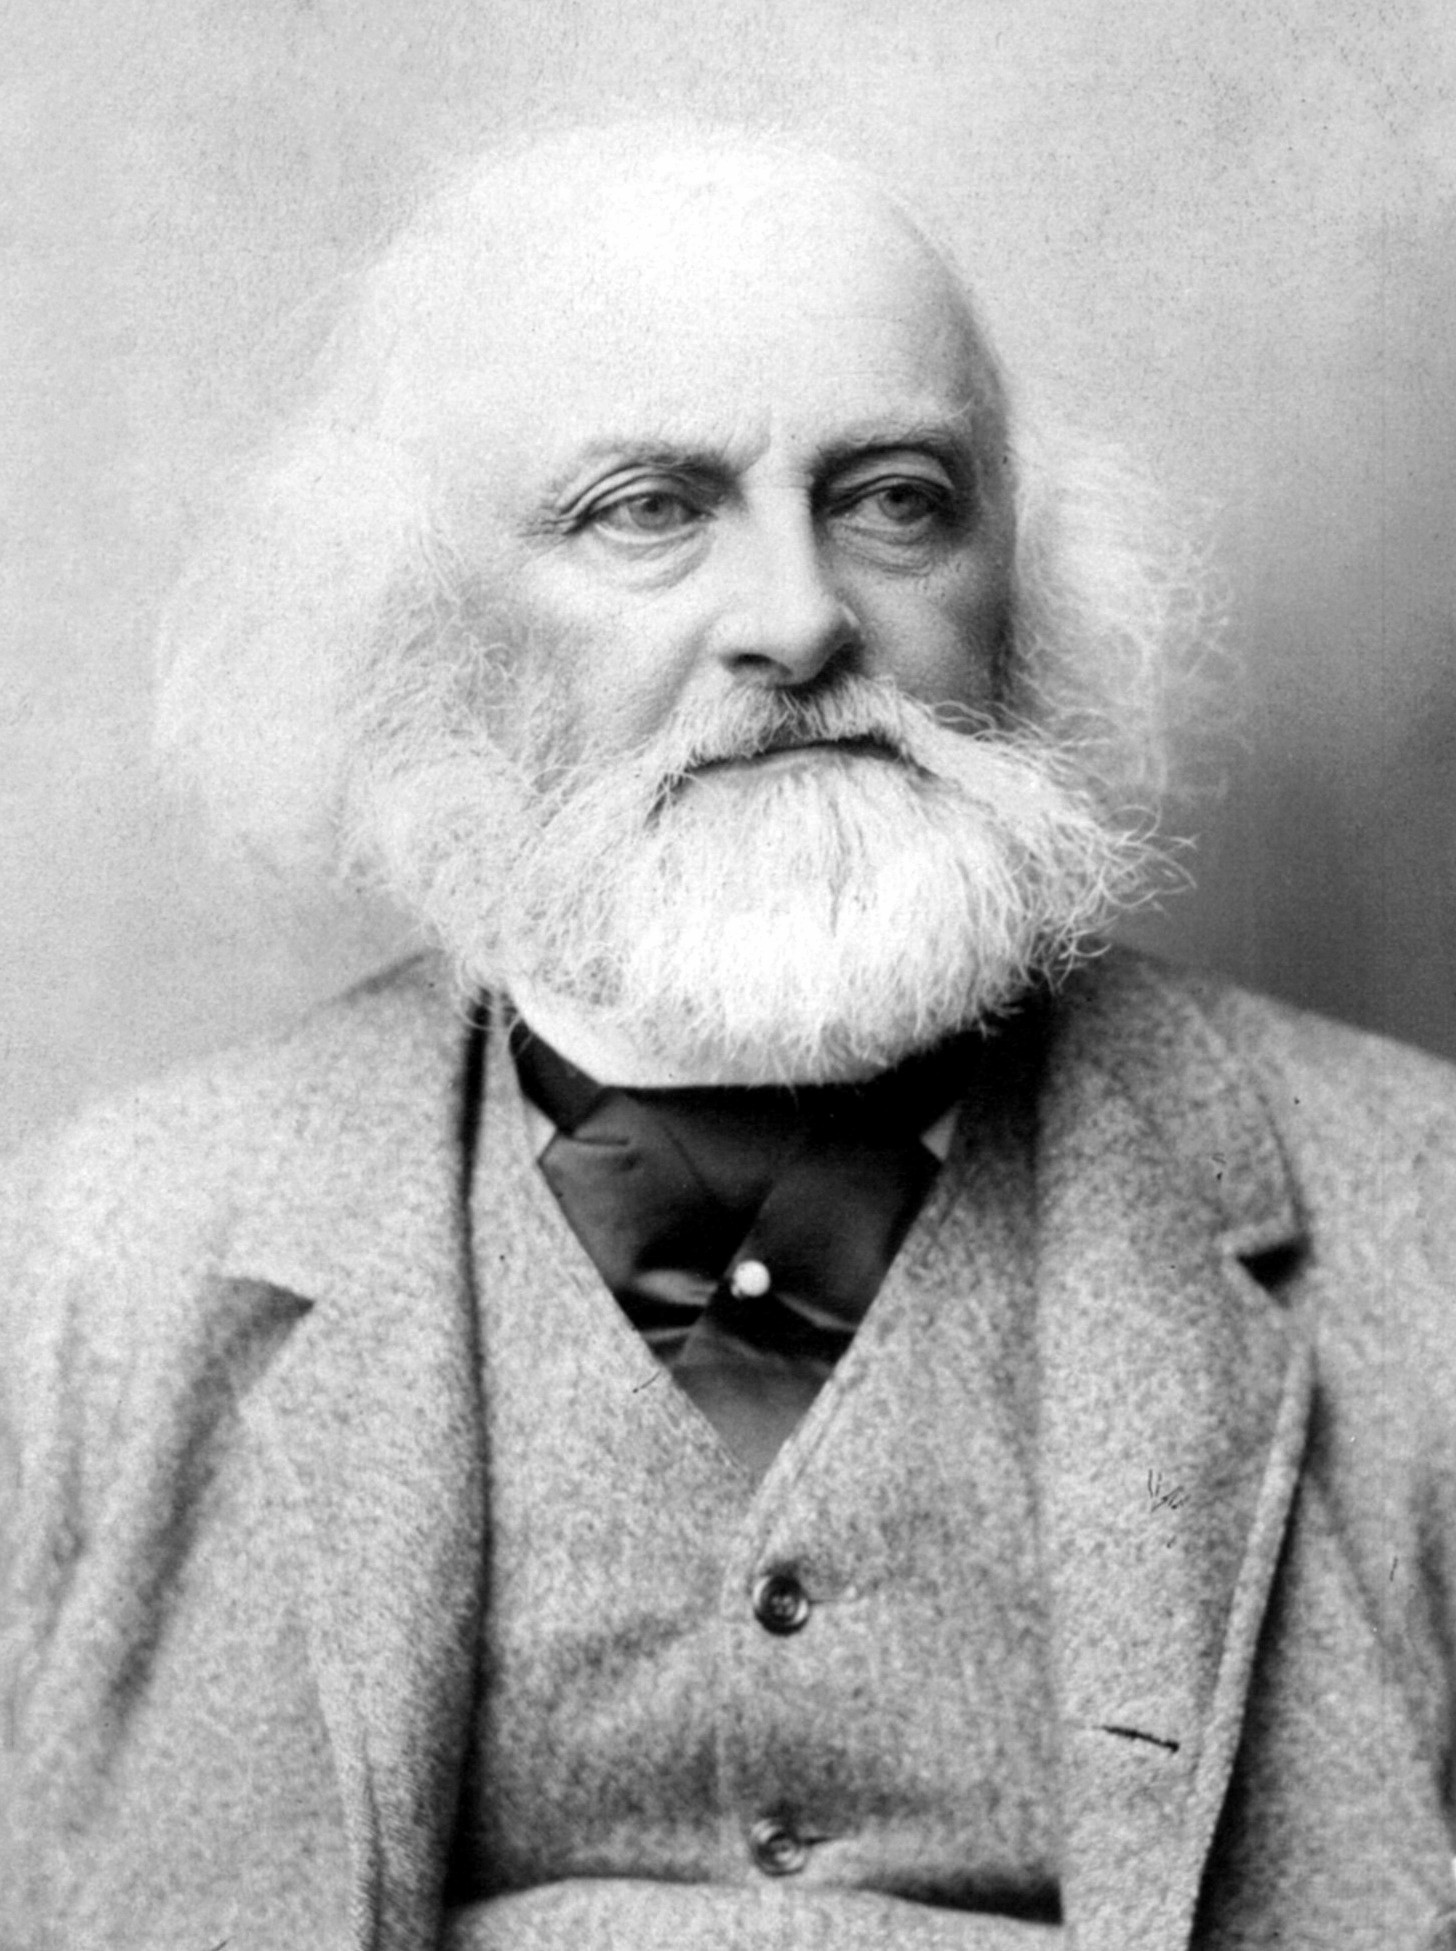 Lewis Morris Rutherfurd, 19th century inventor and astronomer who took the first telescopic photos of the sun, moon and stars. His son Winthrop commissioned the building of Rutherfurd Hall